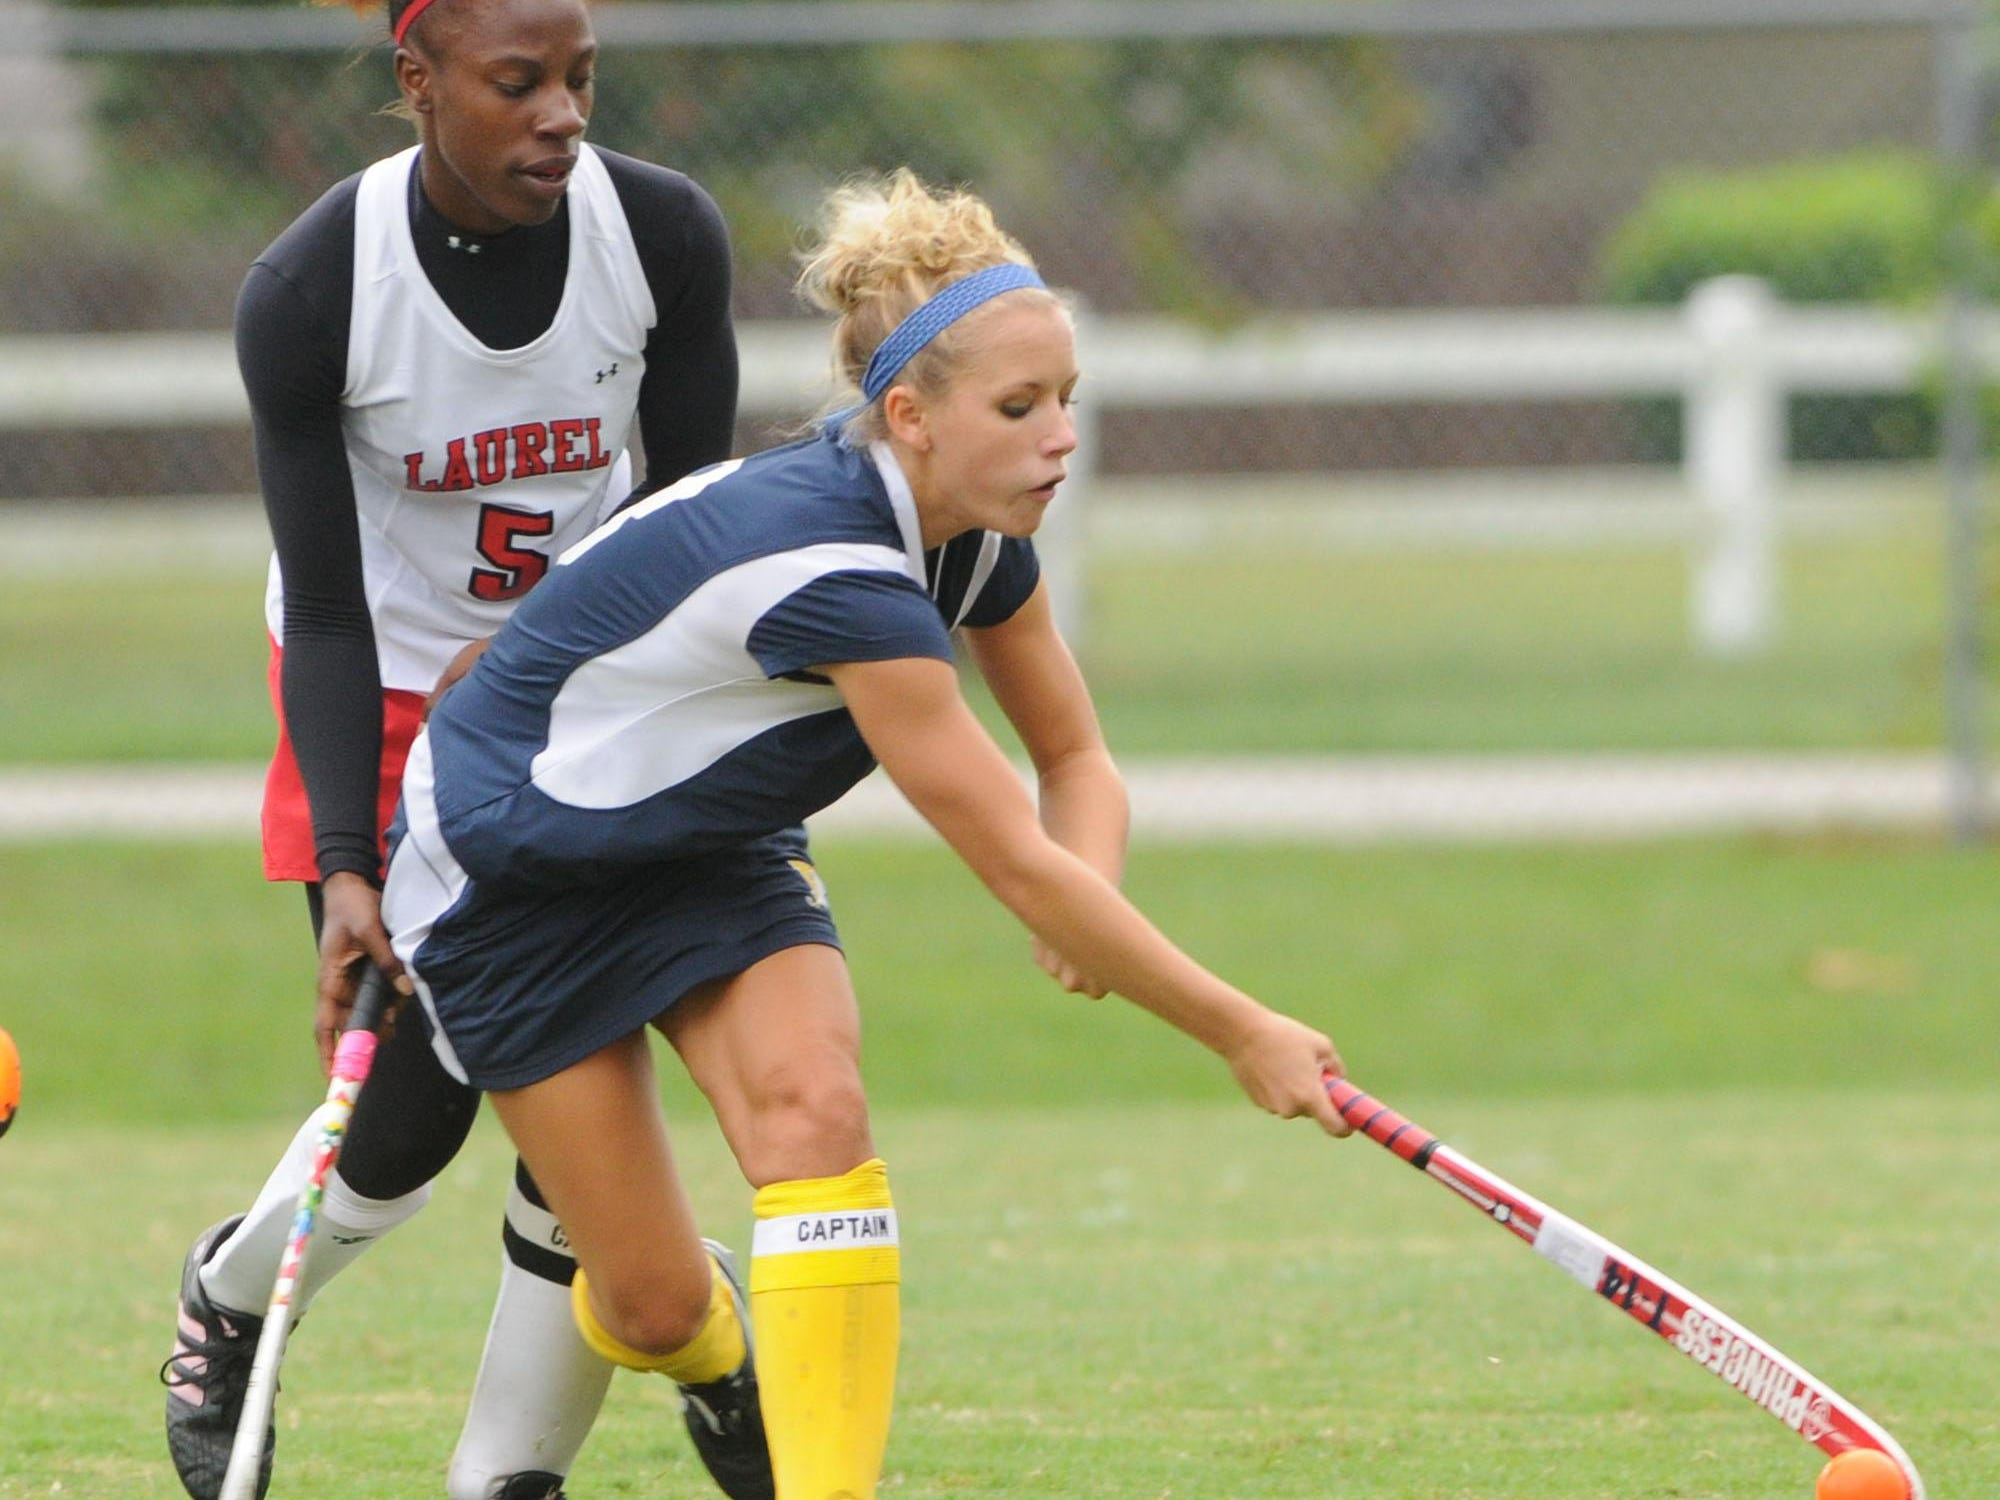 Pocomoke's Michelle Roberts drives against Laurel's Tomarrow Briddell in this 2009 photo.